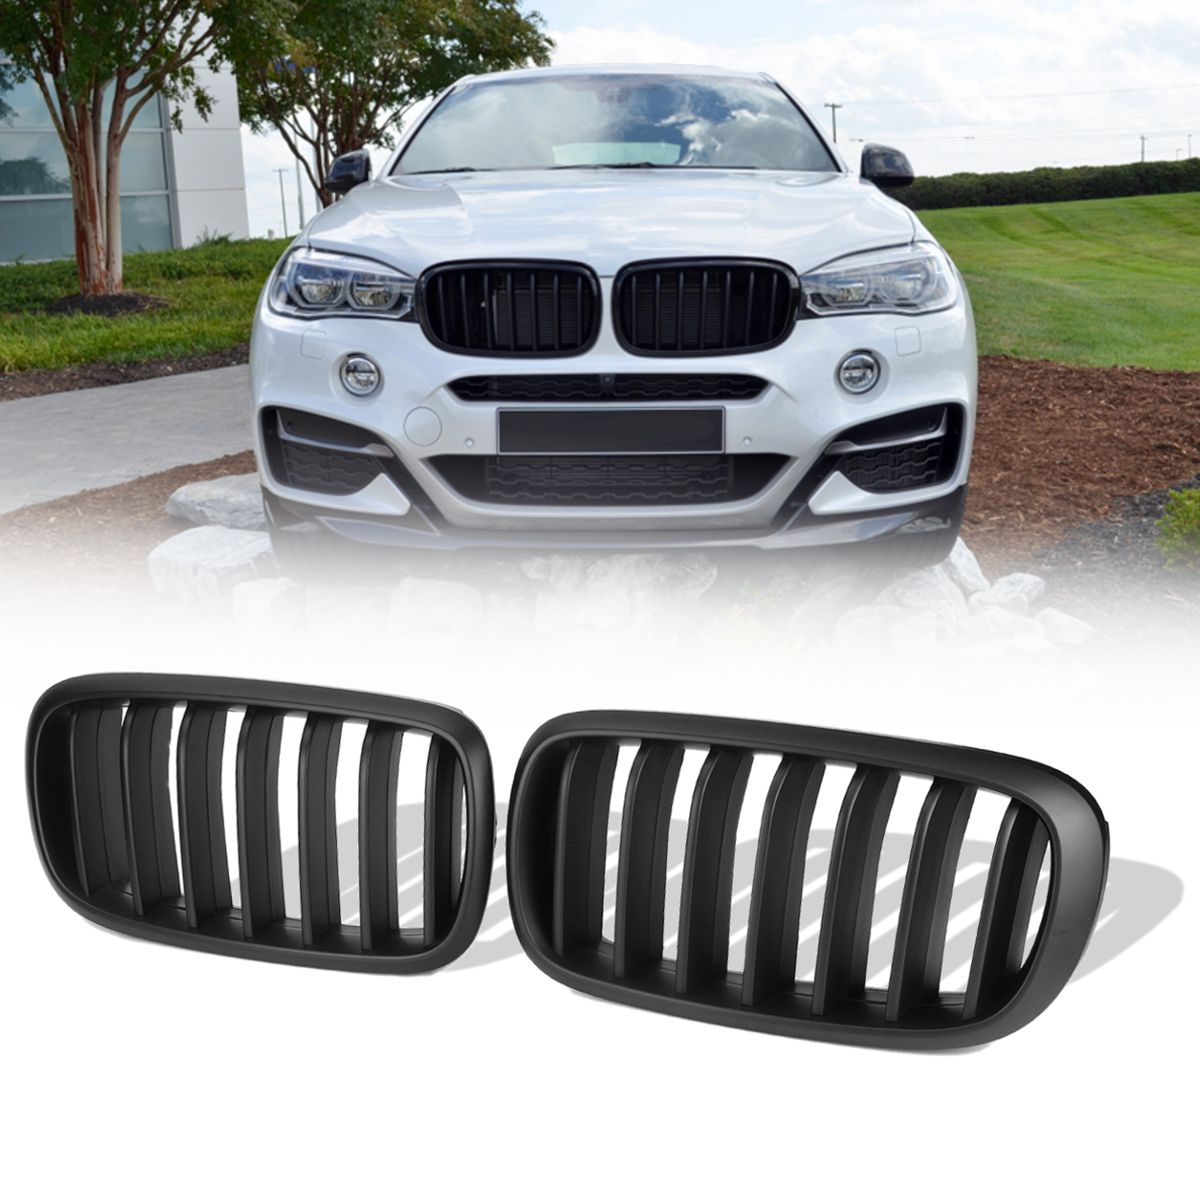 1 Pair Matte Black Front Bumper Racing Grill Kidney Grill Grilles For BMW X5 F15 X6 F16 2013 2014 2015 2016 2017 2018 pair gloss matt black m color front kidney racing bumper grille grill for bmw x5 f15 x6 f16 x5m f85 x6m f86 2014 2015 2016 2017